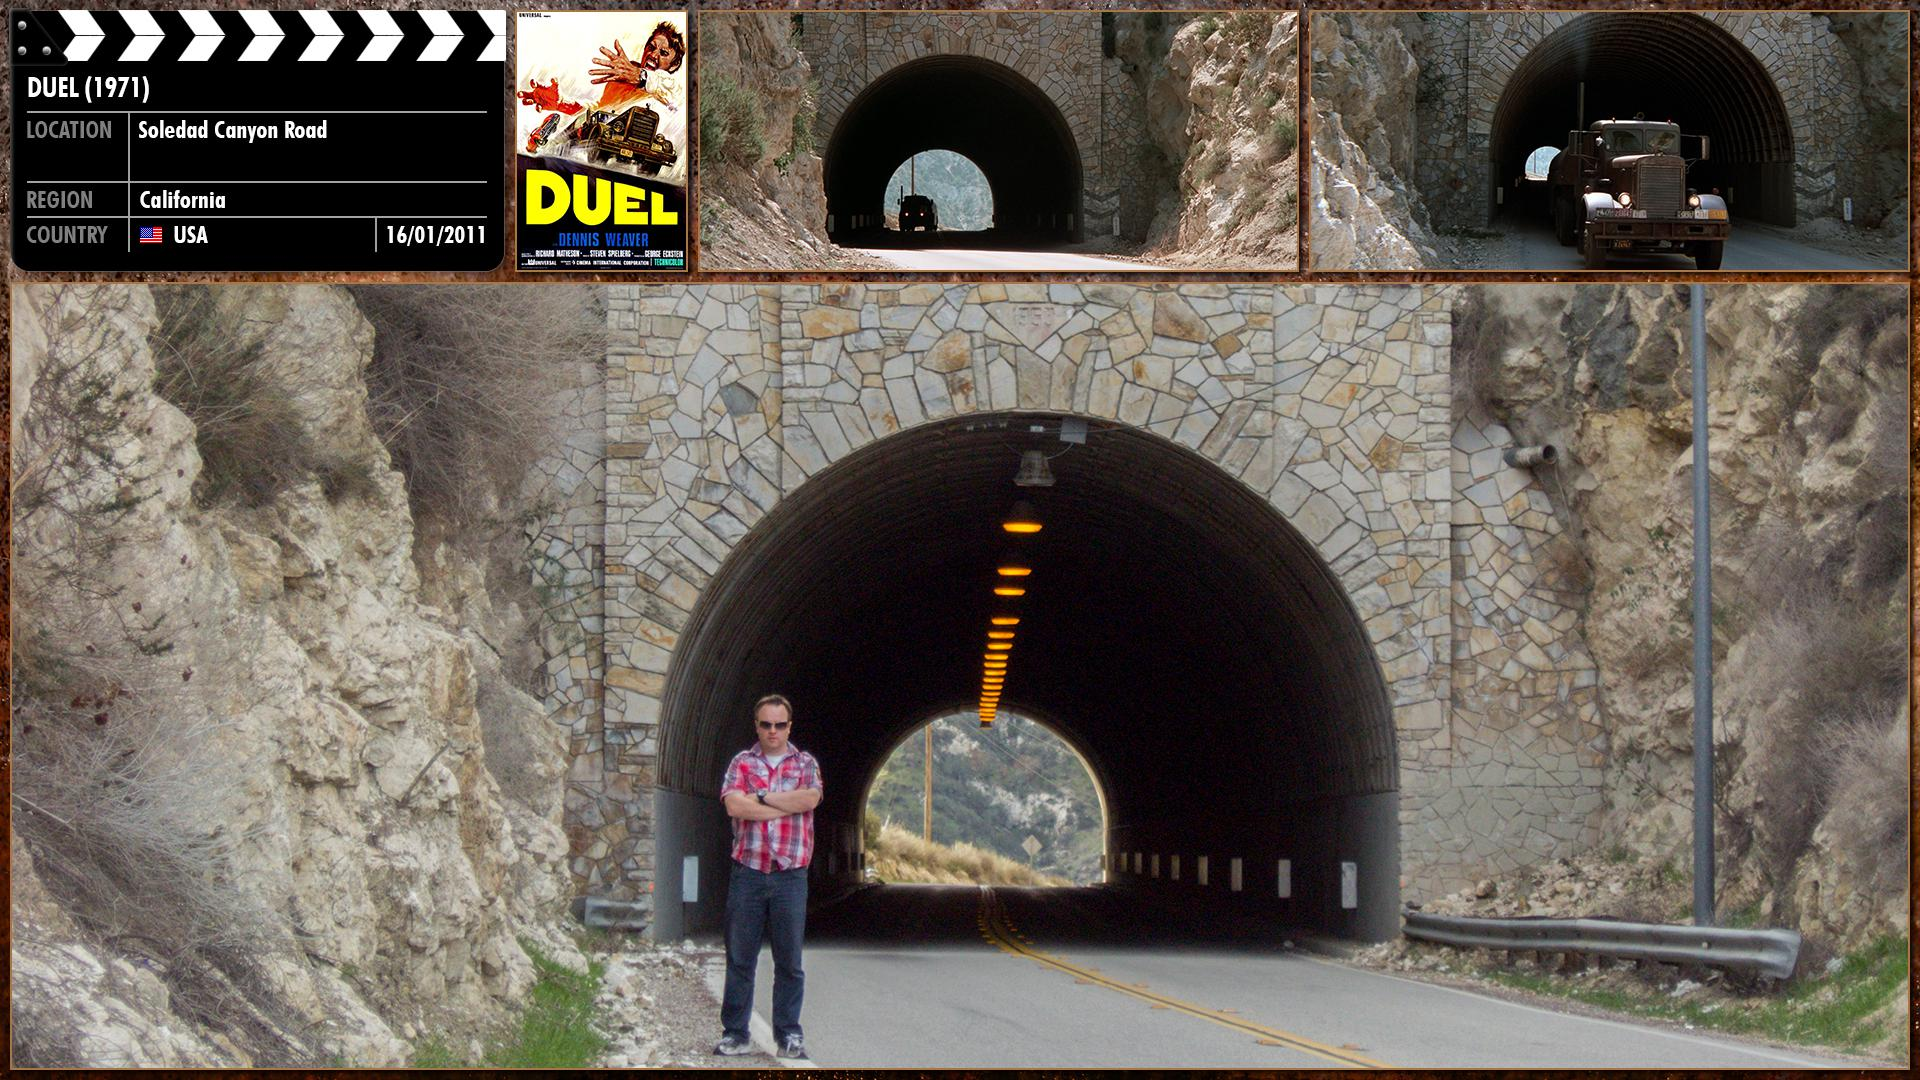 Filming location photo for Duel (1971) 4 of 5